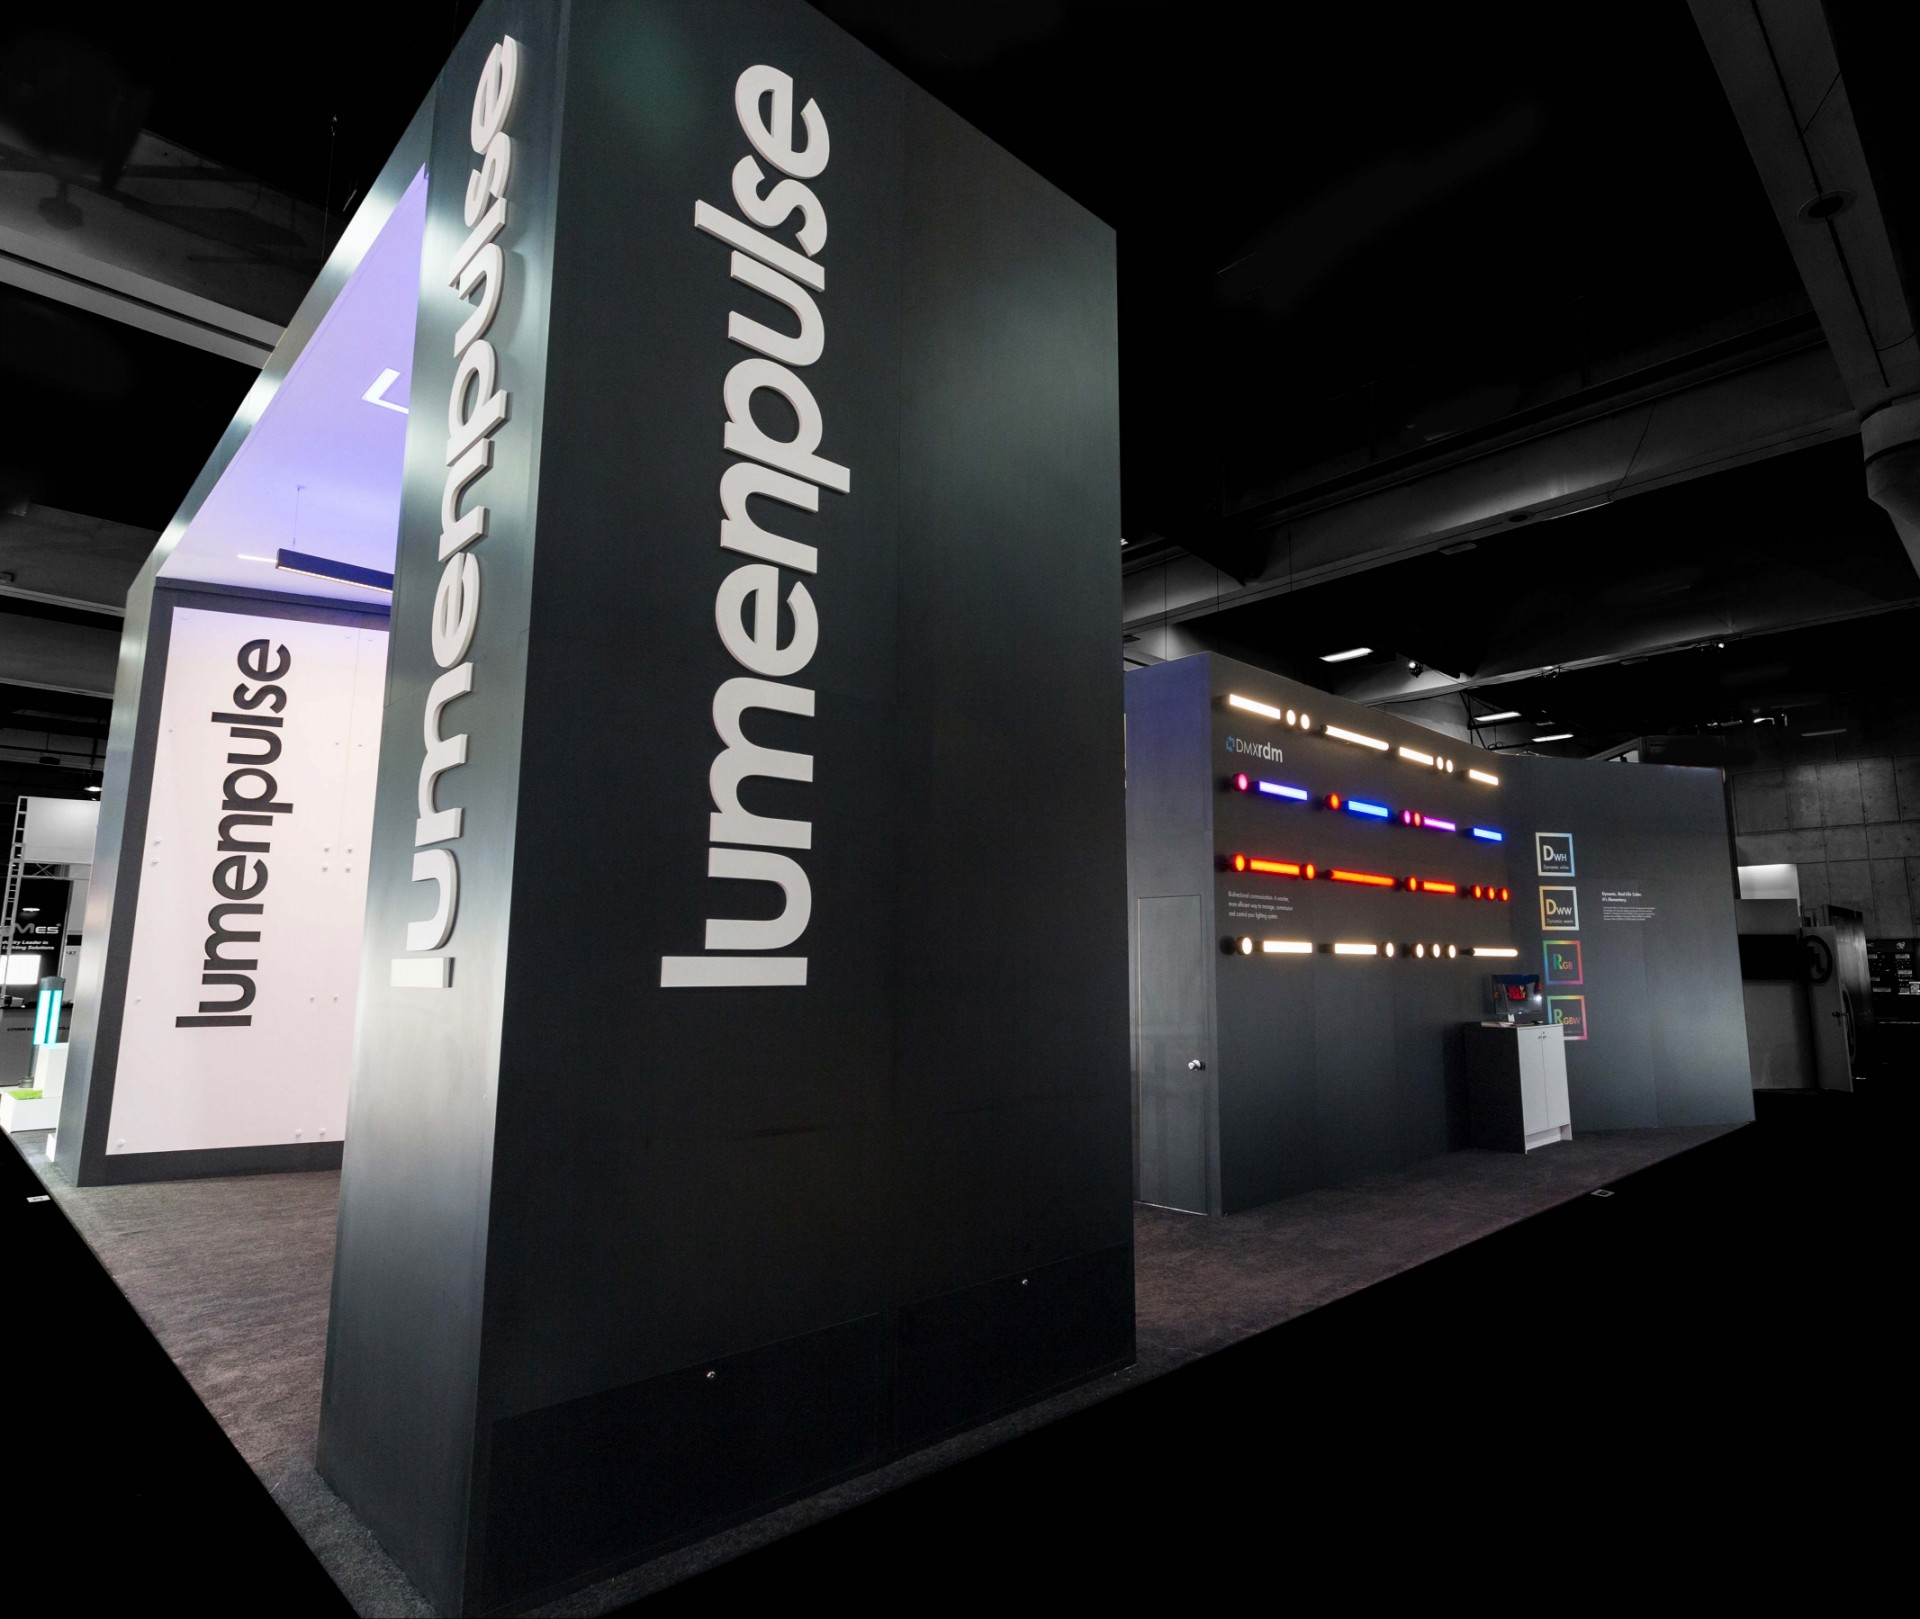 Lumenpulse showcased the scope and versatility of its newly expanded portfolio at Lightfair 2016, unveiling a number of new products and features.